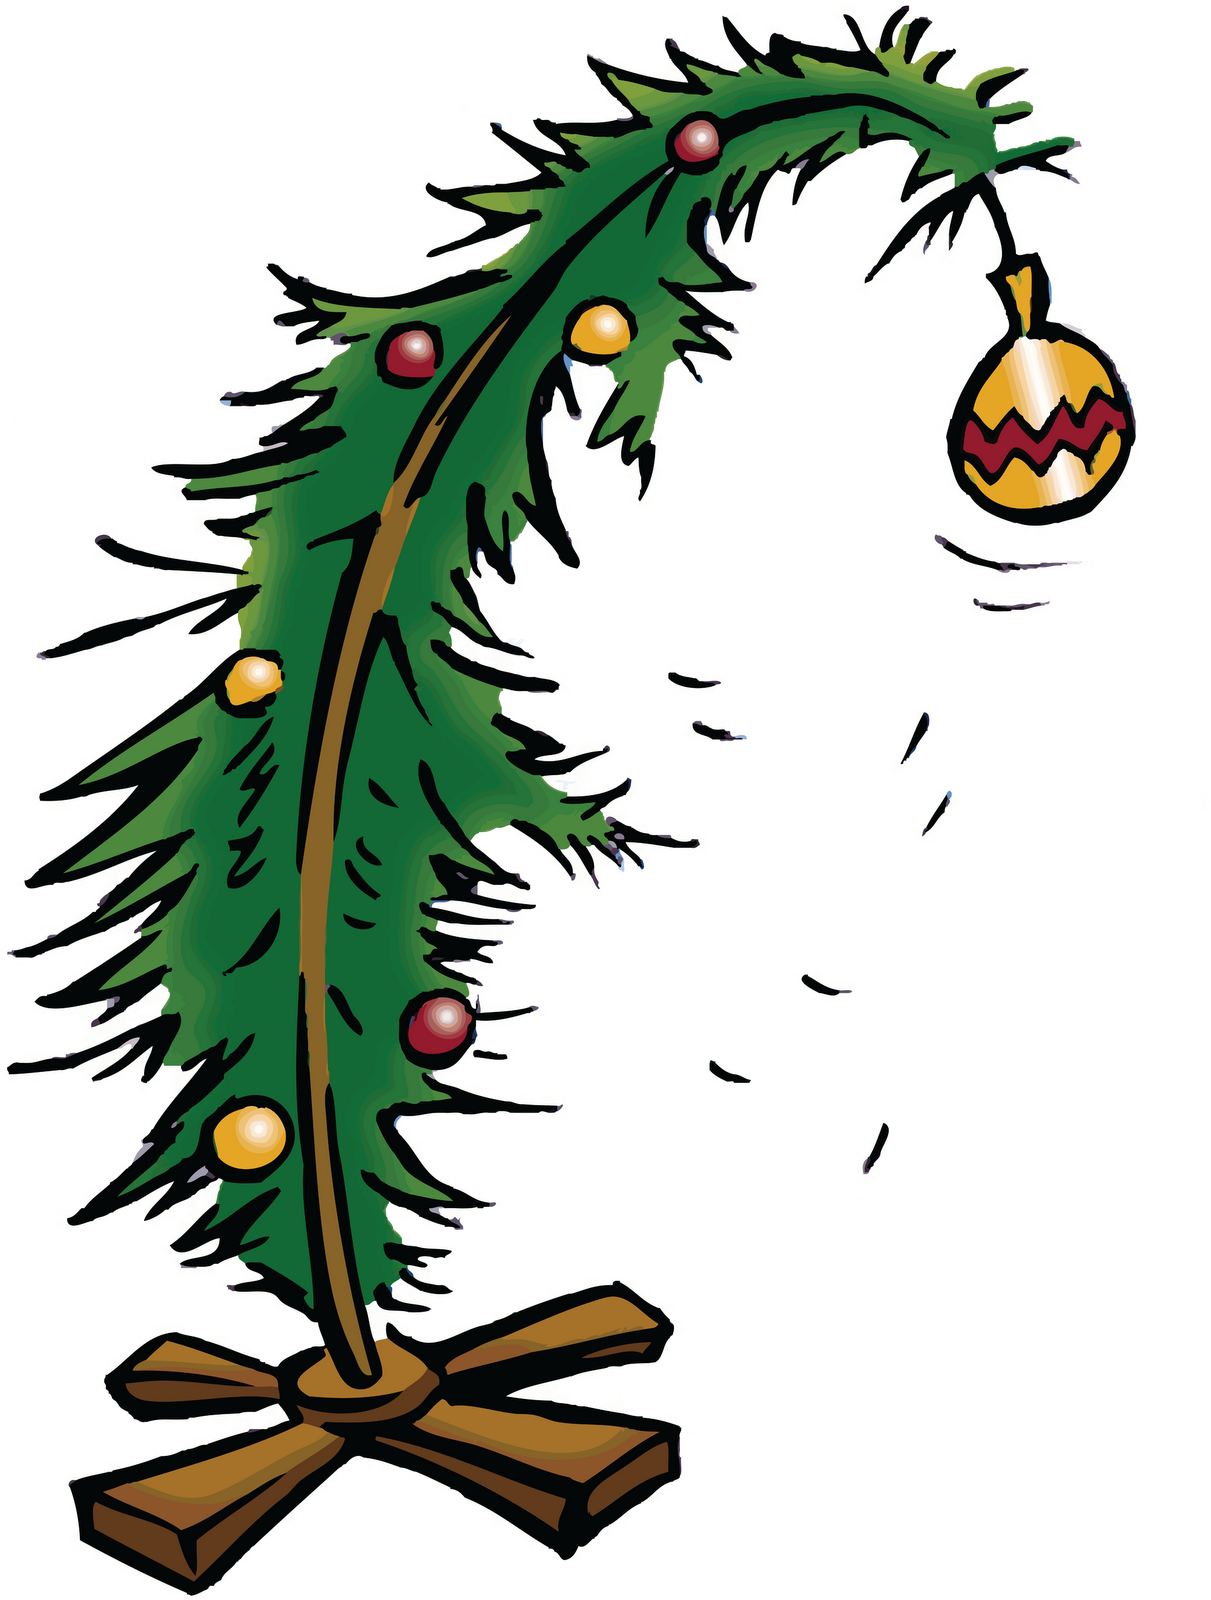 Grinch tree clipart image transparent download 12 Days Of Christmas Clipart Free at GetDrawings.com | Free for ... image transparent download